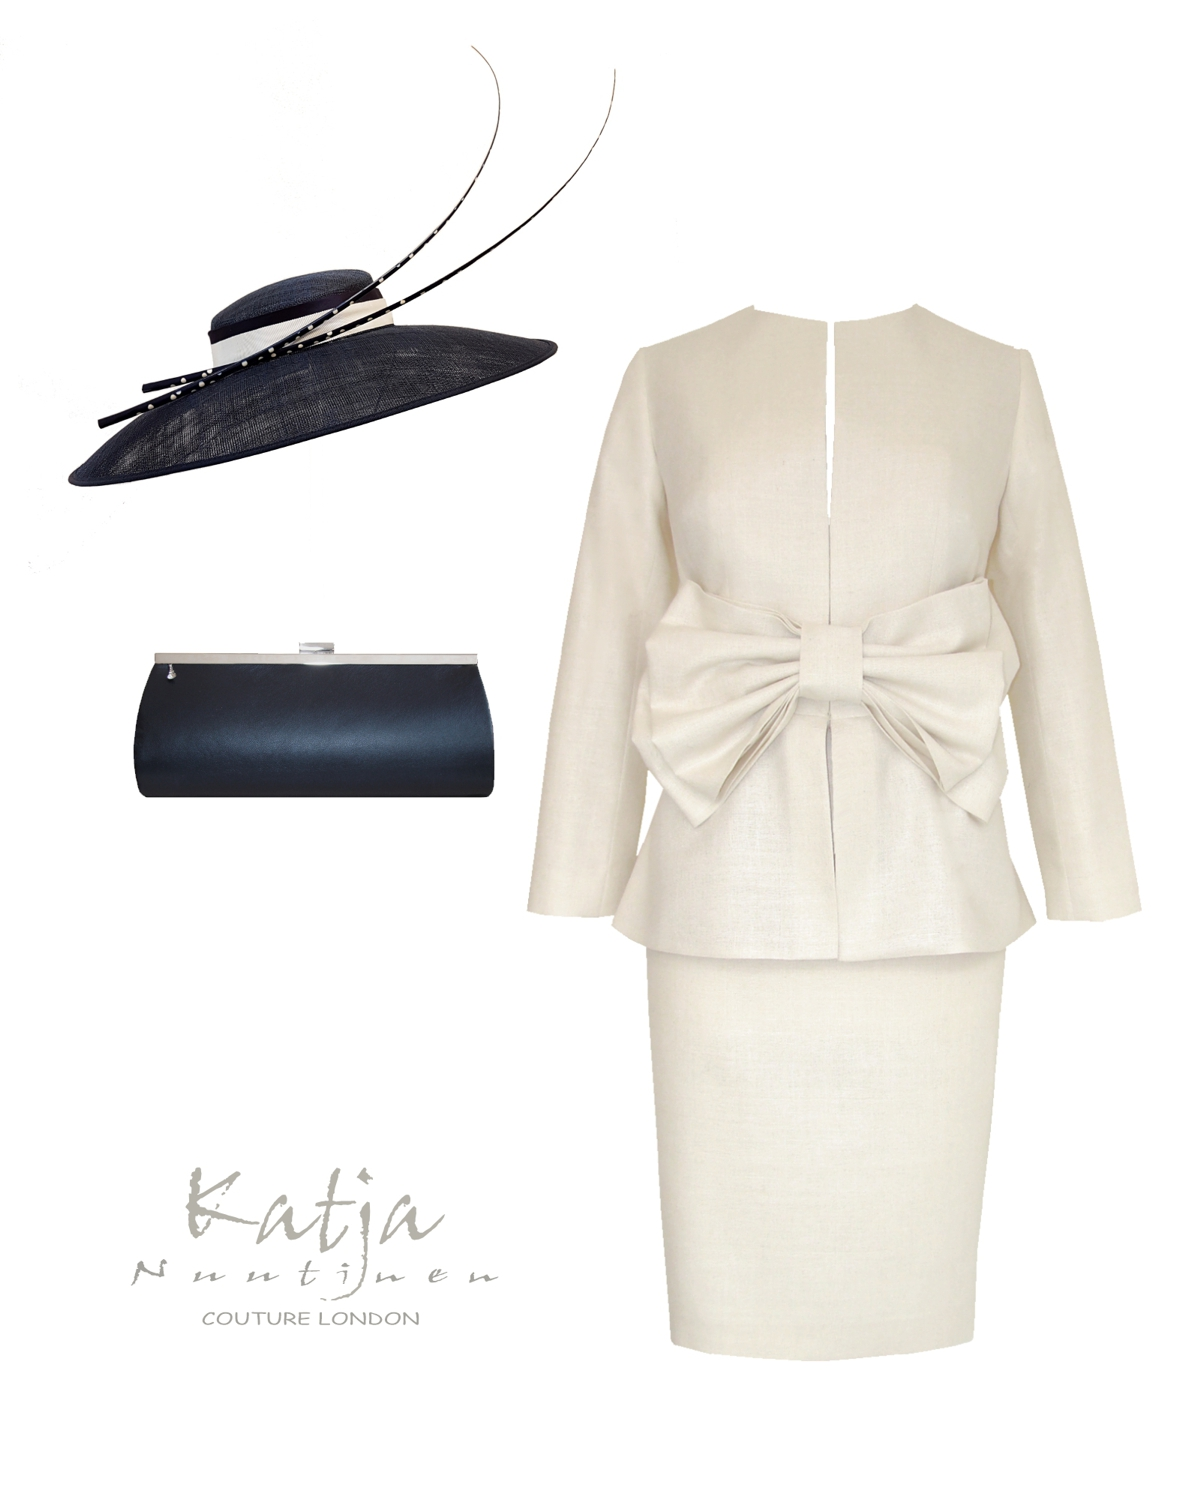 Designer outfit for Mother of the Bride or Groom- cream suit with bow, navy hat and leather clutch bag